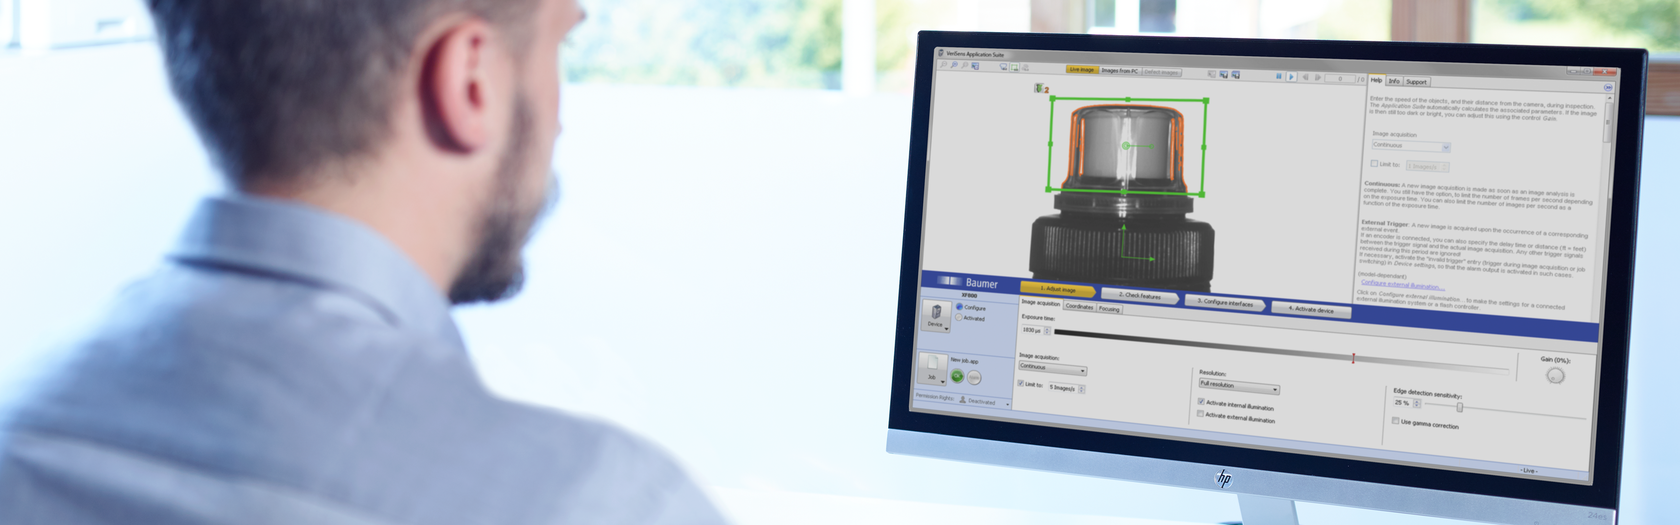 Baumer software for industrial cameras and vision sensors – VeriSens Application Suite